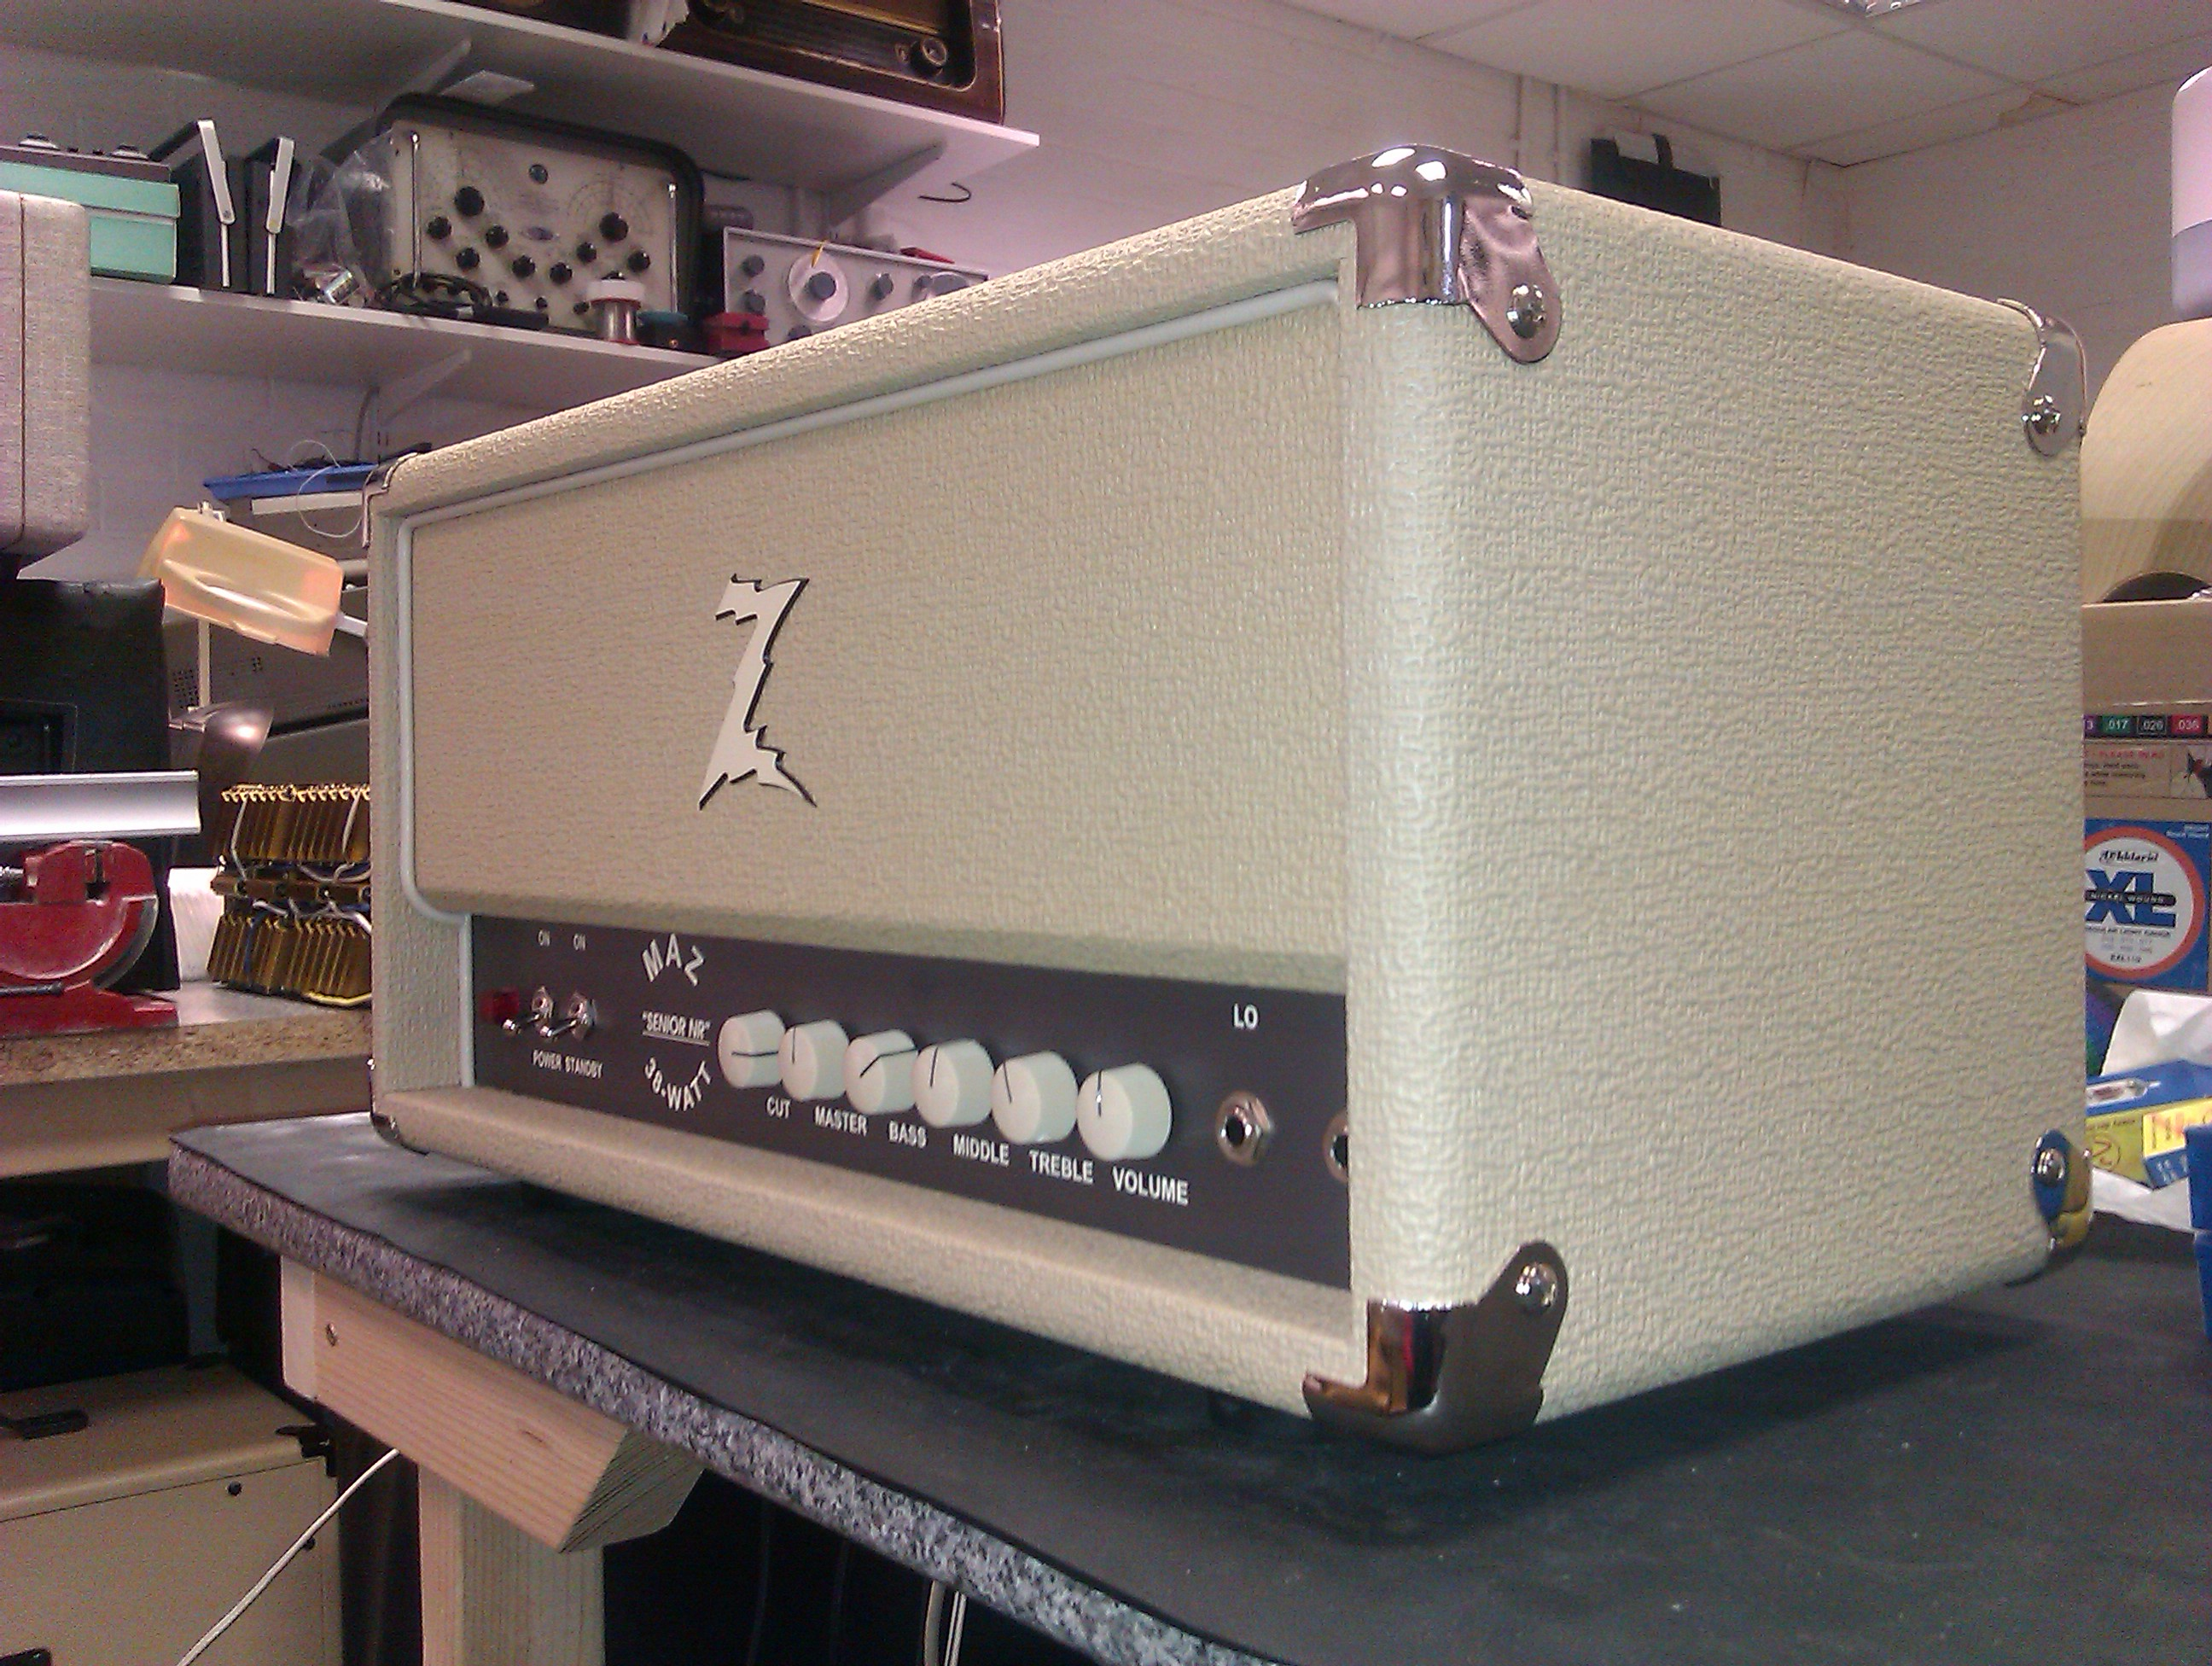 The great Maz 38 NR, fitted with the Essex Amp Repairs reverb mod